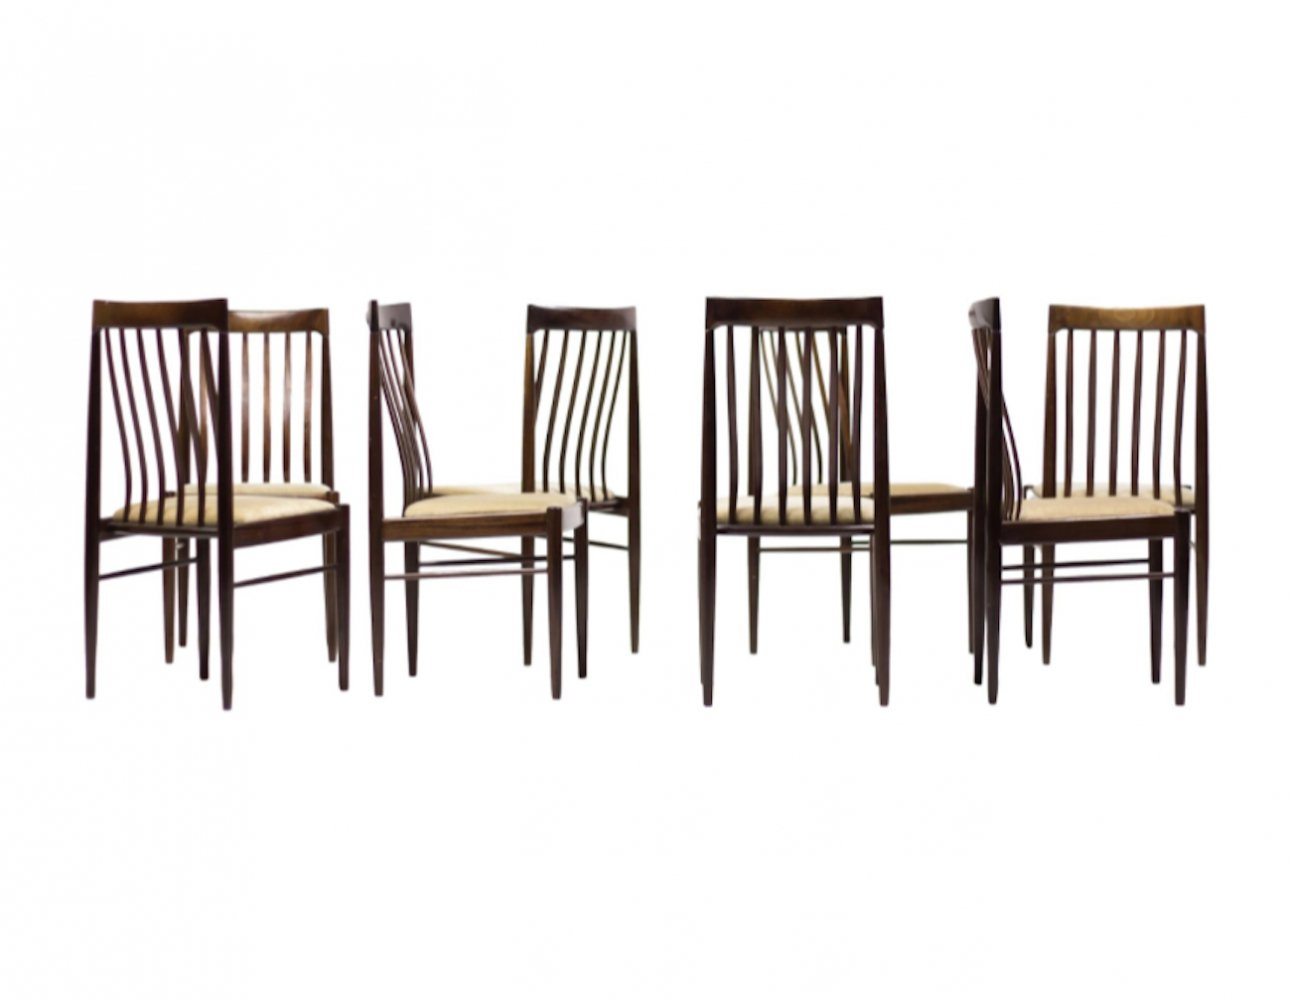 Set of 8 Danish design Mahogany chairs by H.W. Klein for Bramin